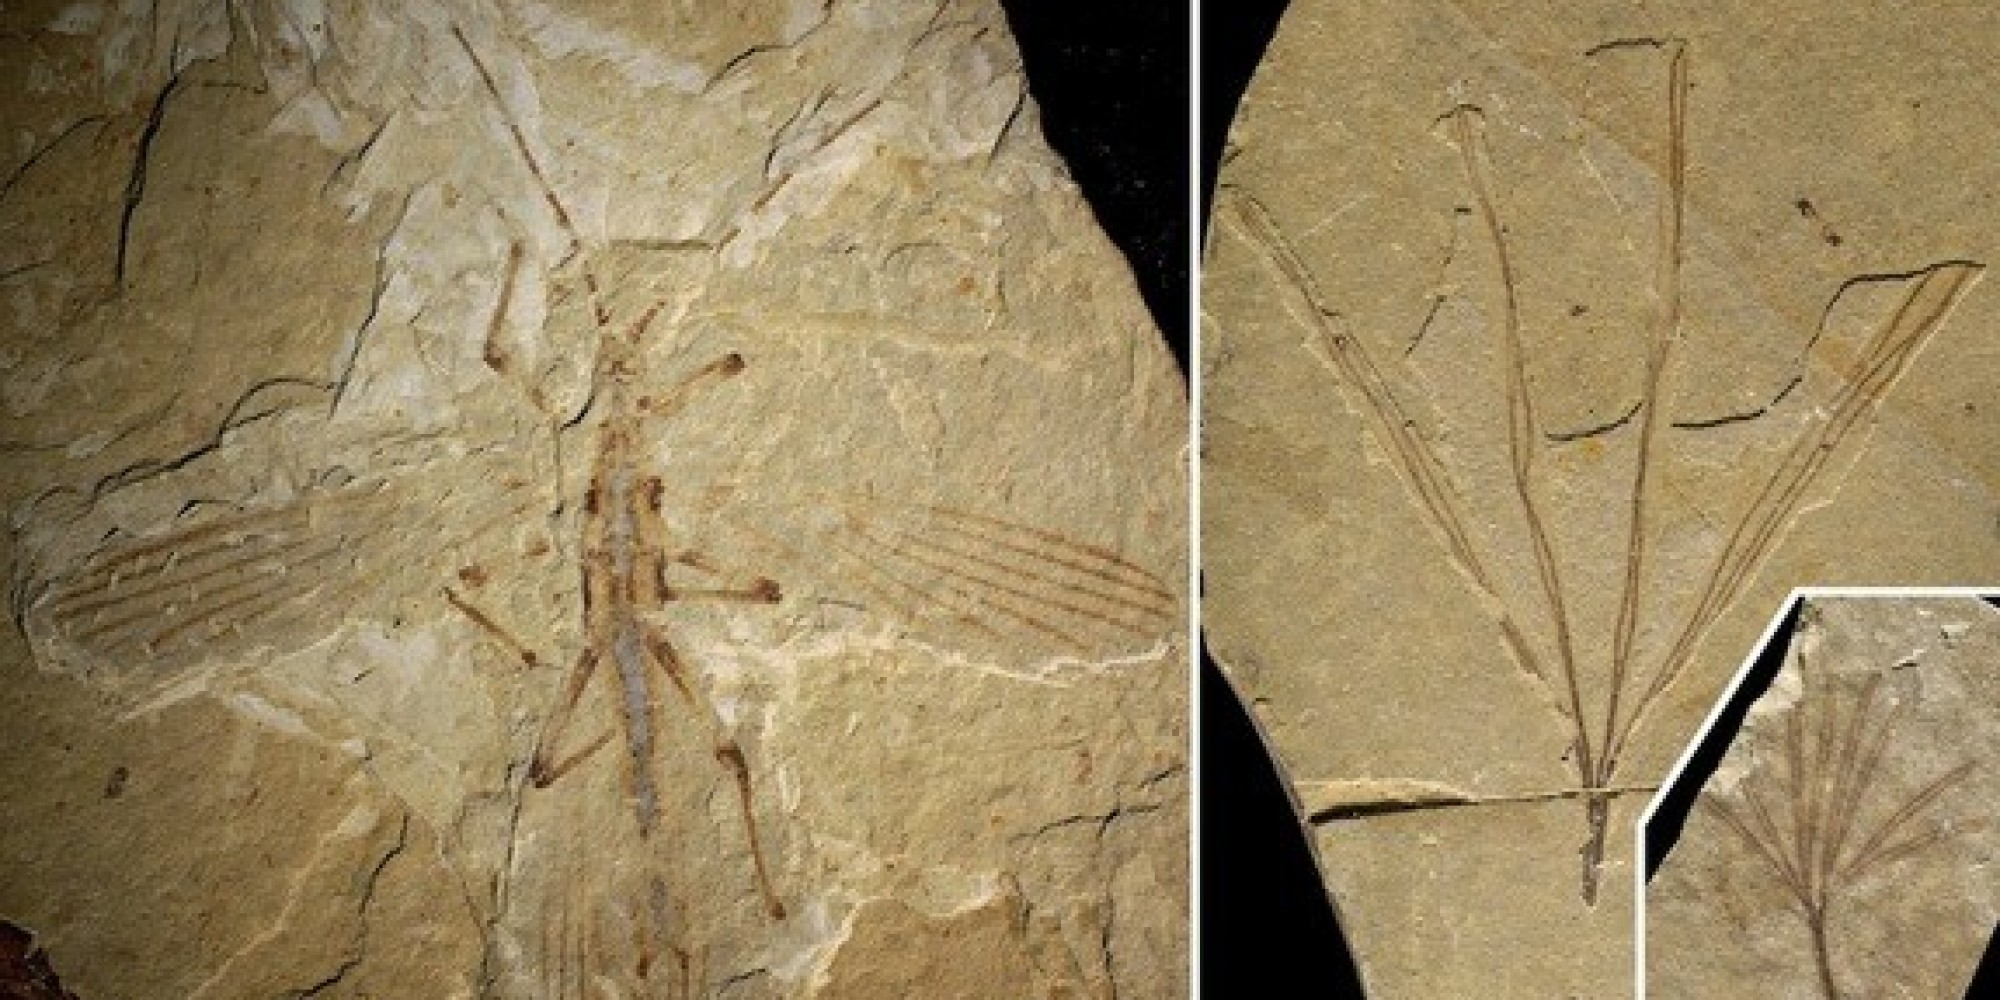 Insect Fossils on Mars Fossilized Stick Insect